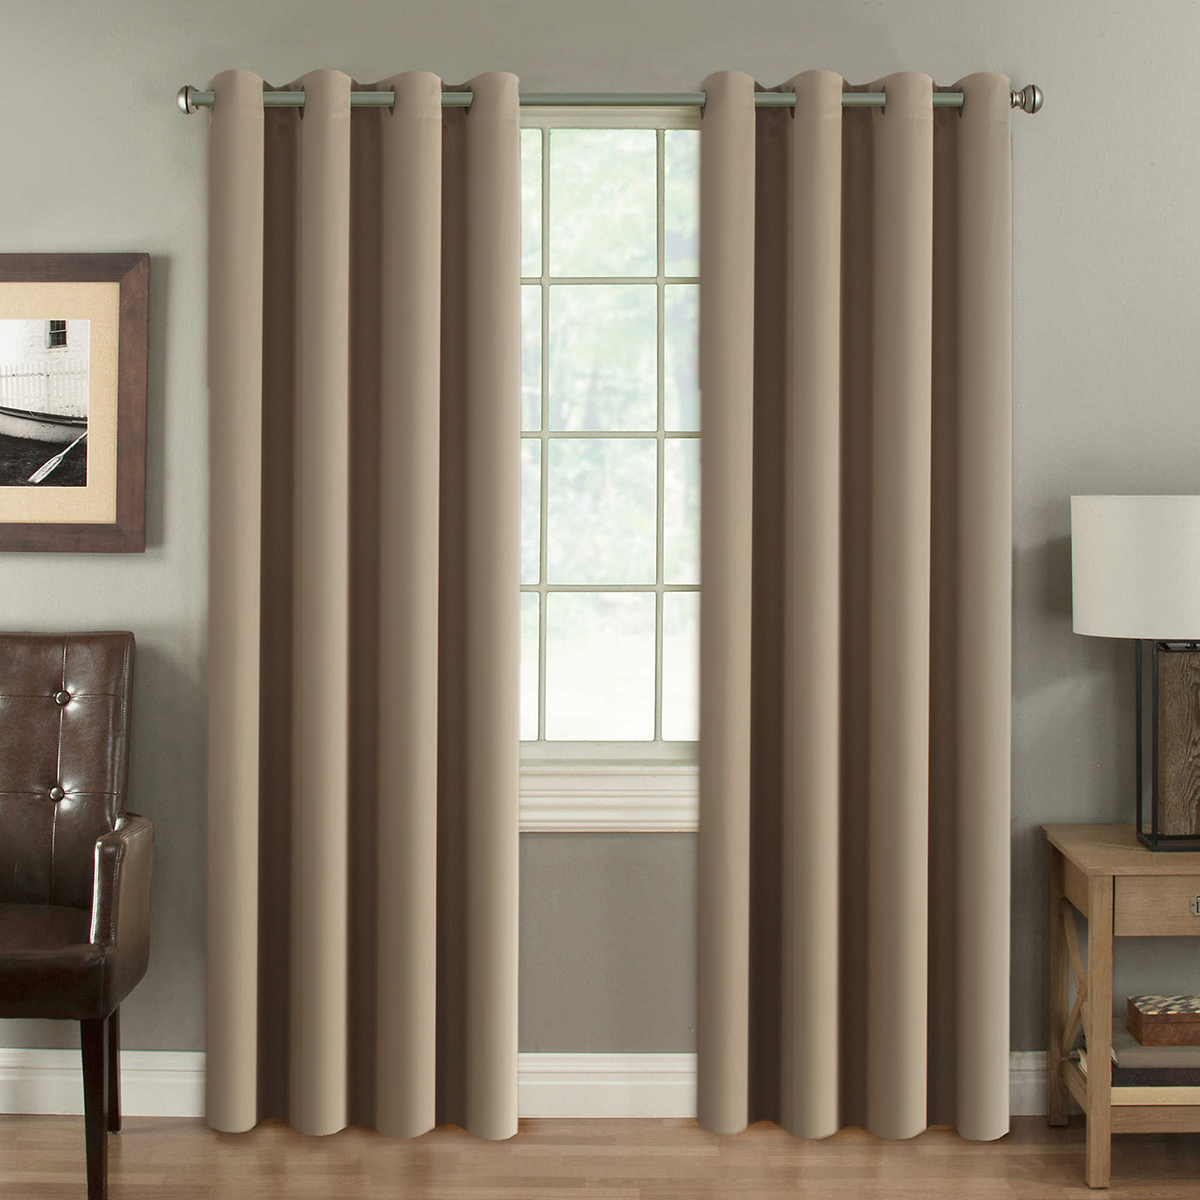 H.VERSAILTEX Blackout Thermal Insulated Room Darkening Winow Treatment  Extra Long Curtains / Drapes,Grommet Panels (Set of 2,52 by 108 -  Inch,Solid Khaki)